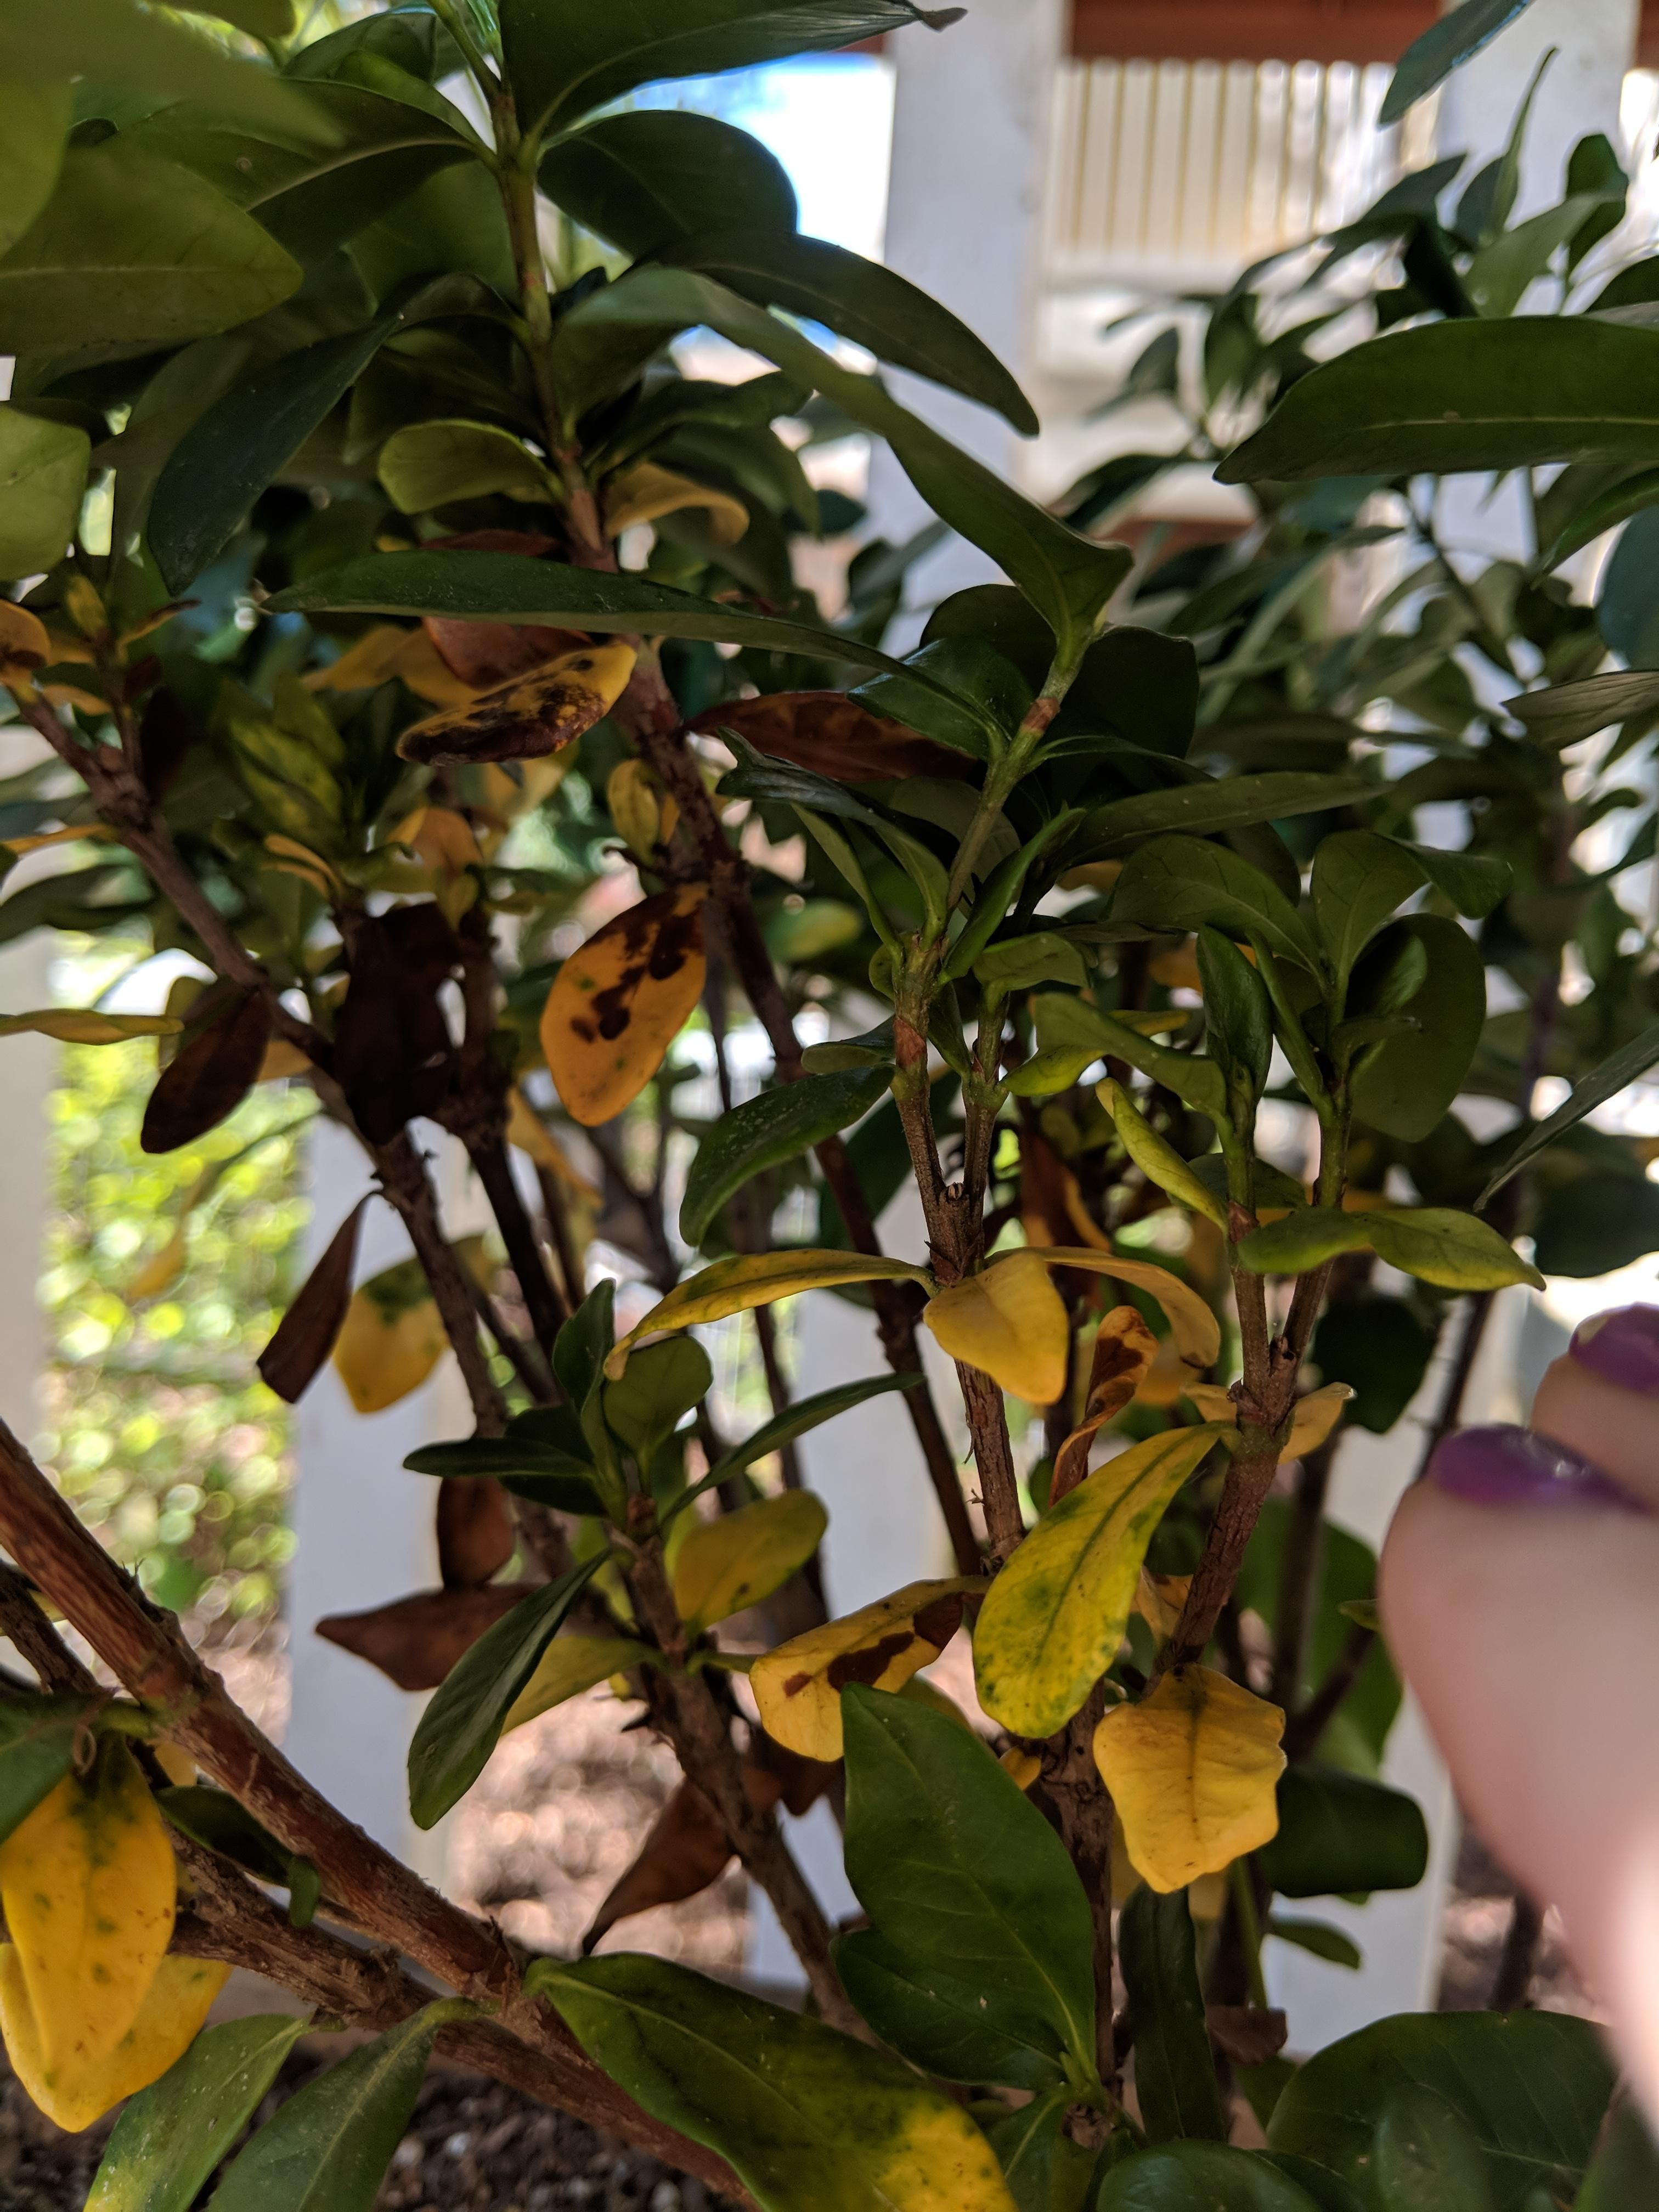 Help Yellowing And Brown Spotted Leaves On Gardenia Gardening Garden Diy Home Flowers Roses Nature Landsc Gardenia Plant Plant Leaves Yellow And Brown